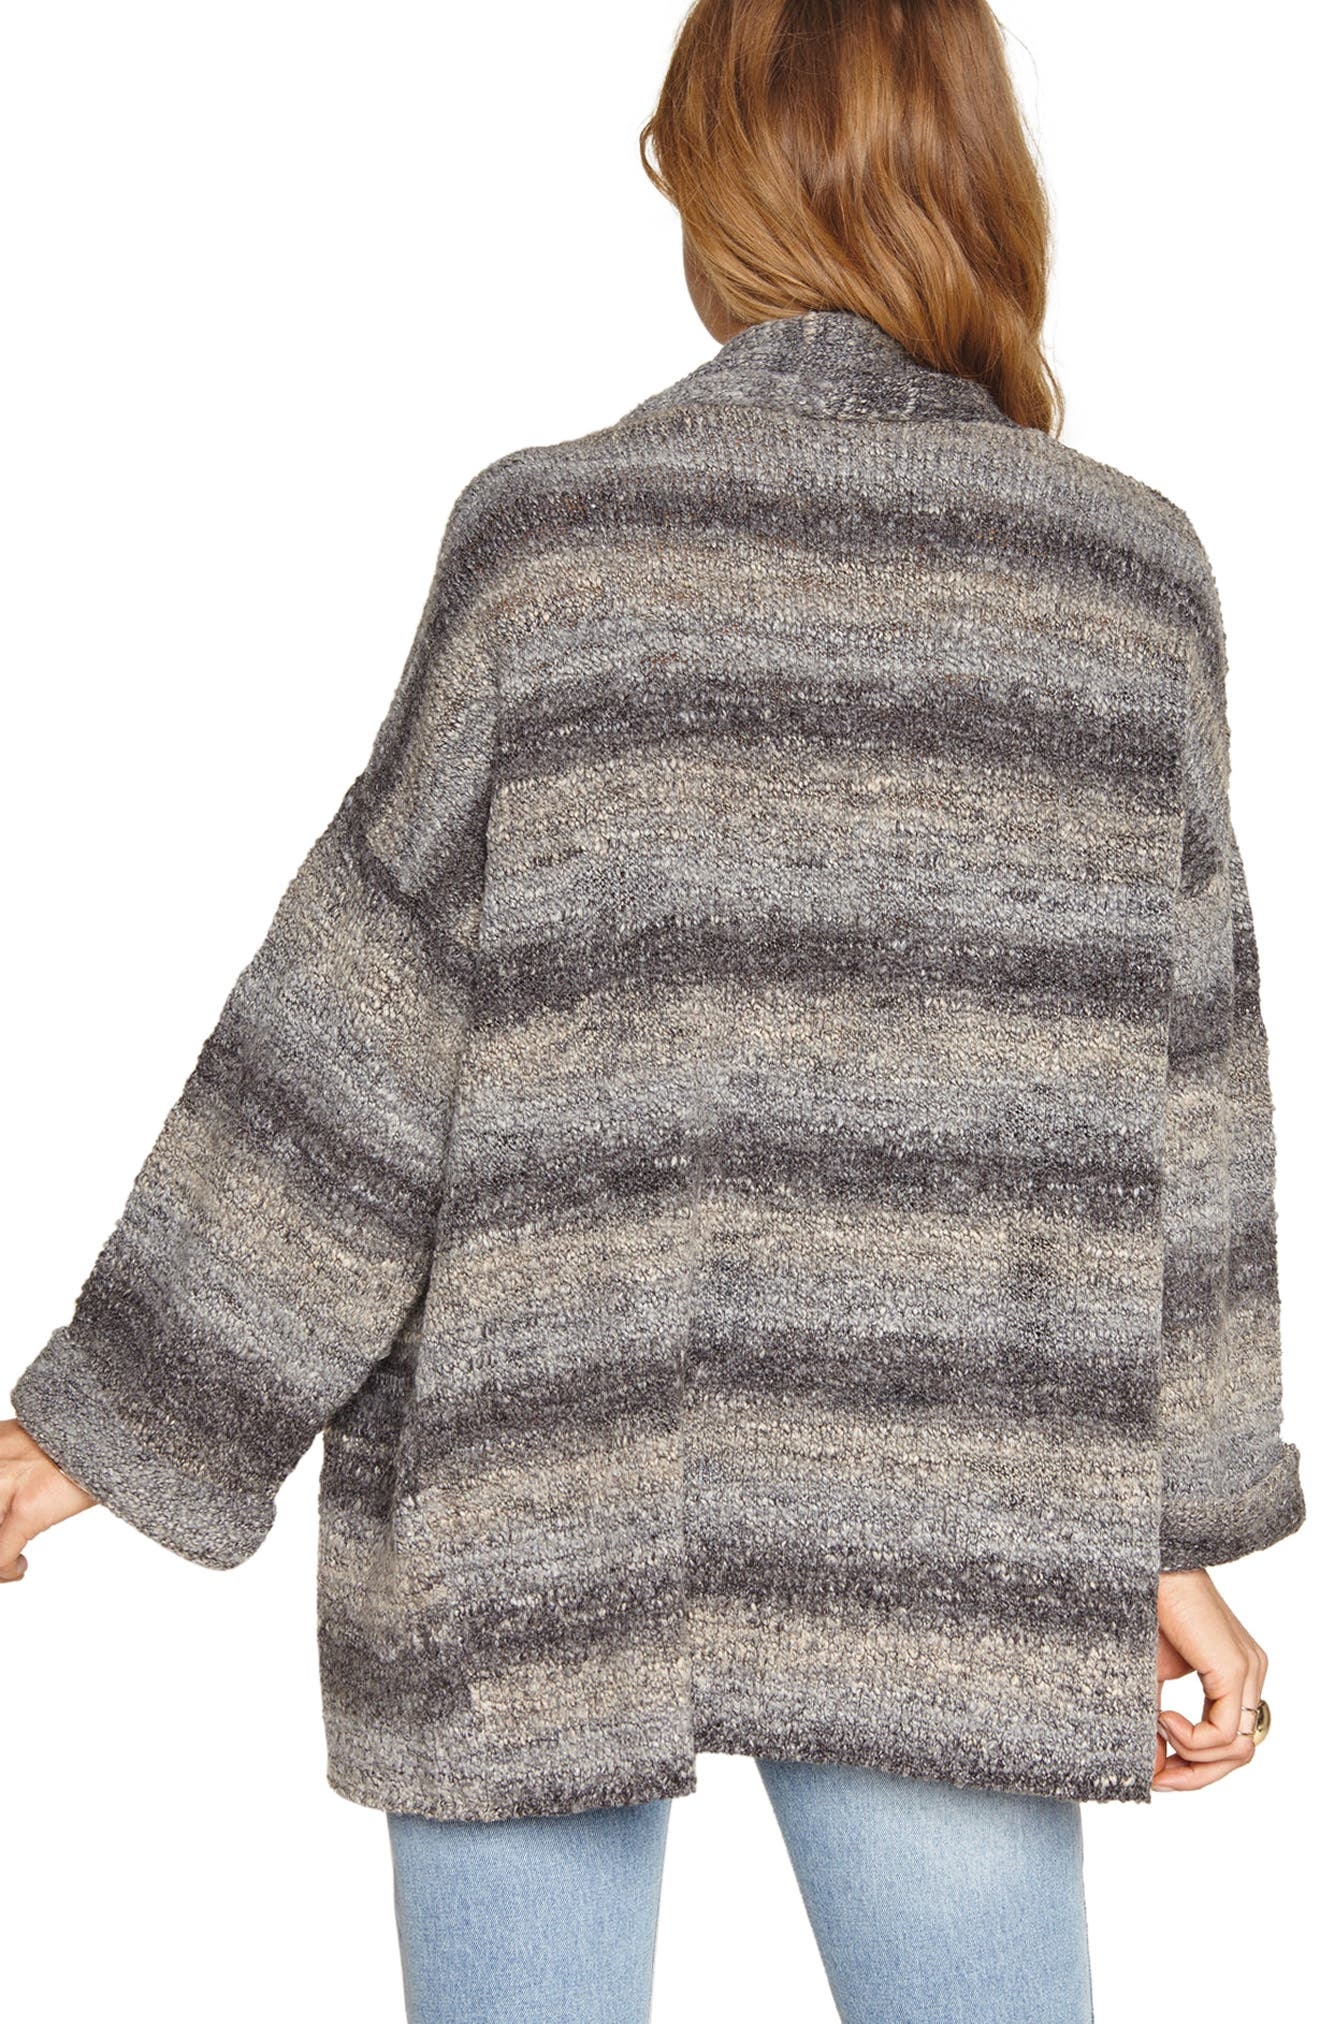 Beckett Stripe Sweater,                             Alternate thumbnail 3, color,                             Grey Mist